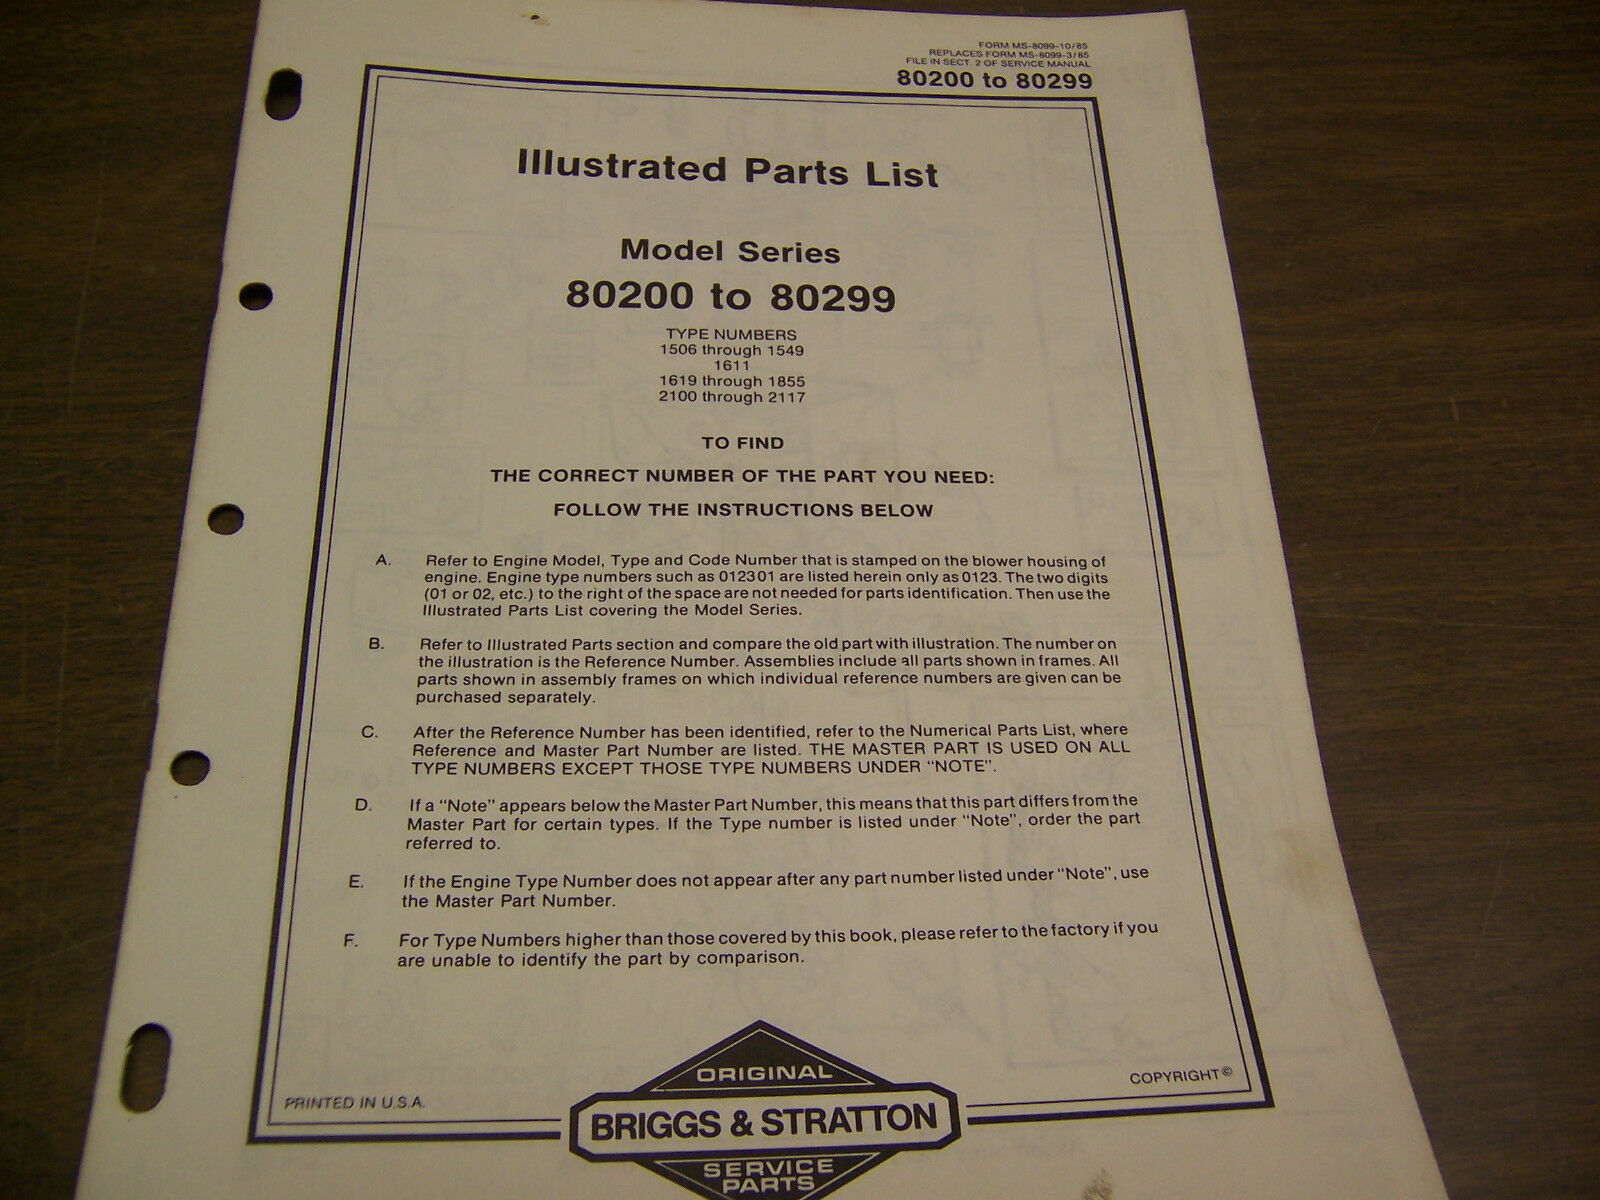 11515 Briggs Stratton Illustrated Parts List 80200 To 80299 And Engine Diagram For 1 Of 2only Available